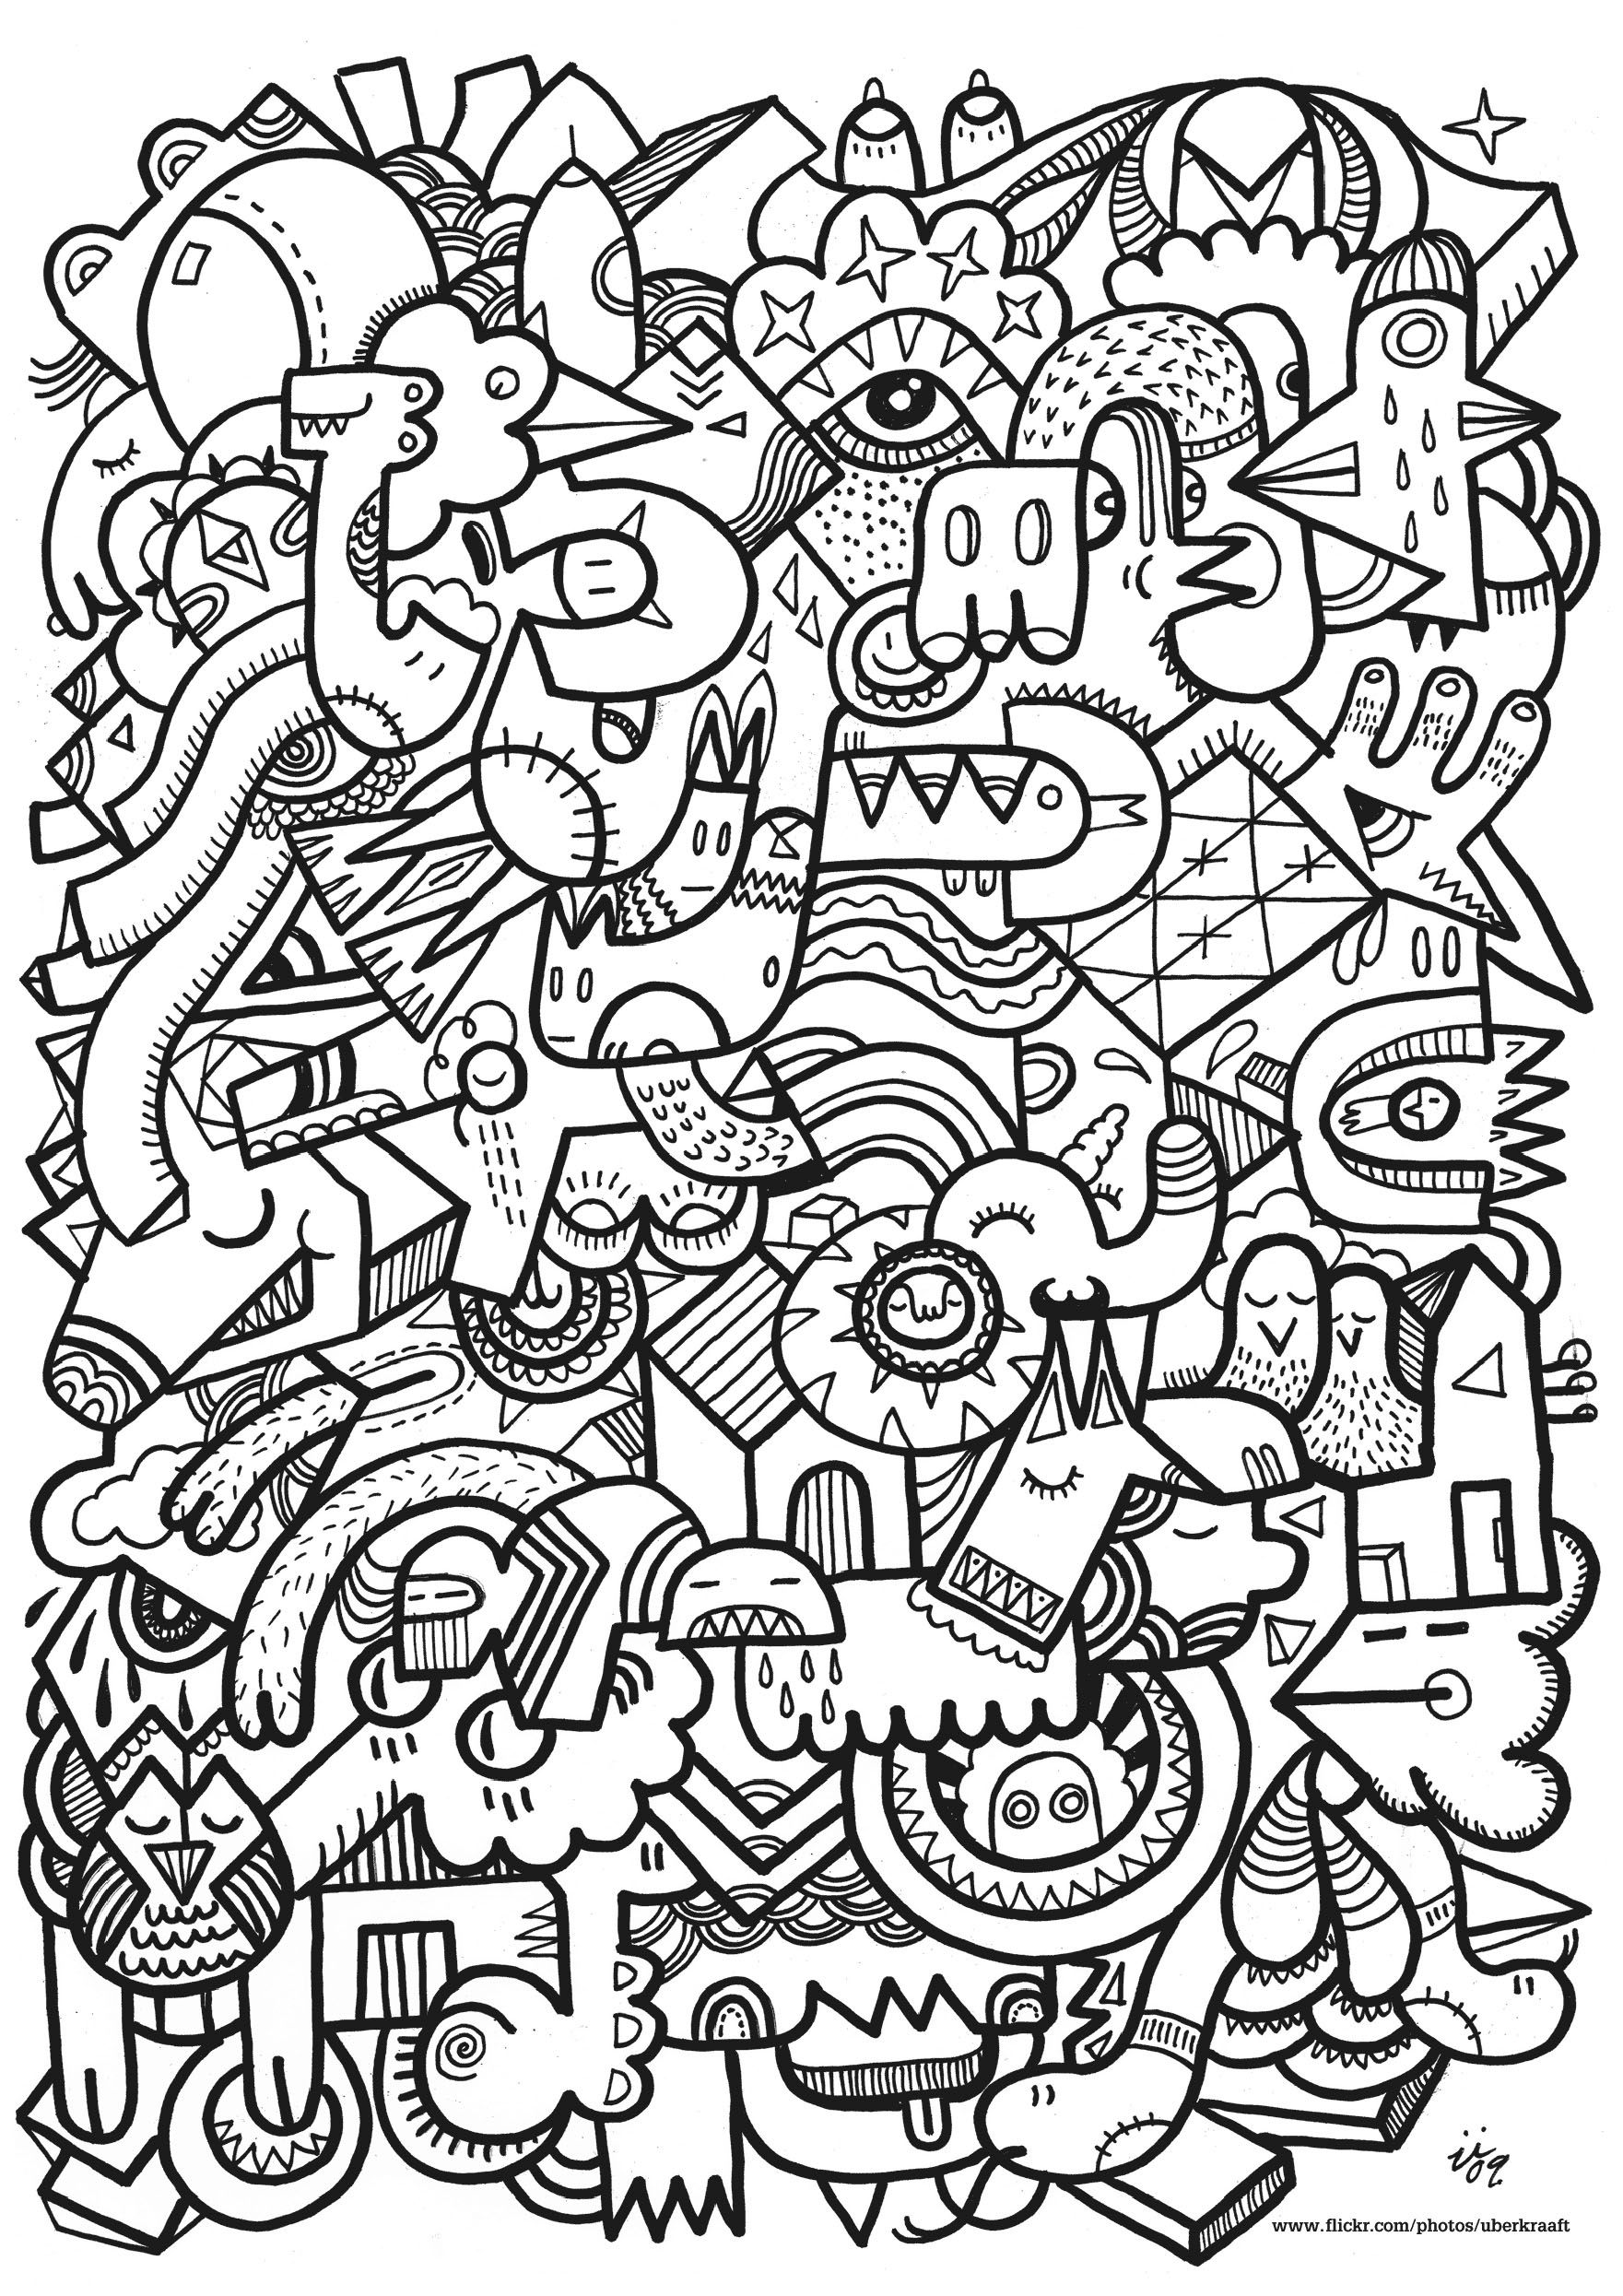 Complex Drawing With Different Doodle Creatures Unclassifiable Coloring Pages For Adults Just Color Avec Images Coloriage Difficile Image Coloriage Coloriage Anti Stress